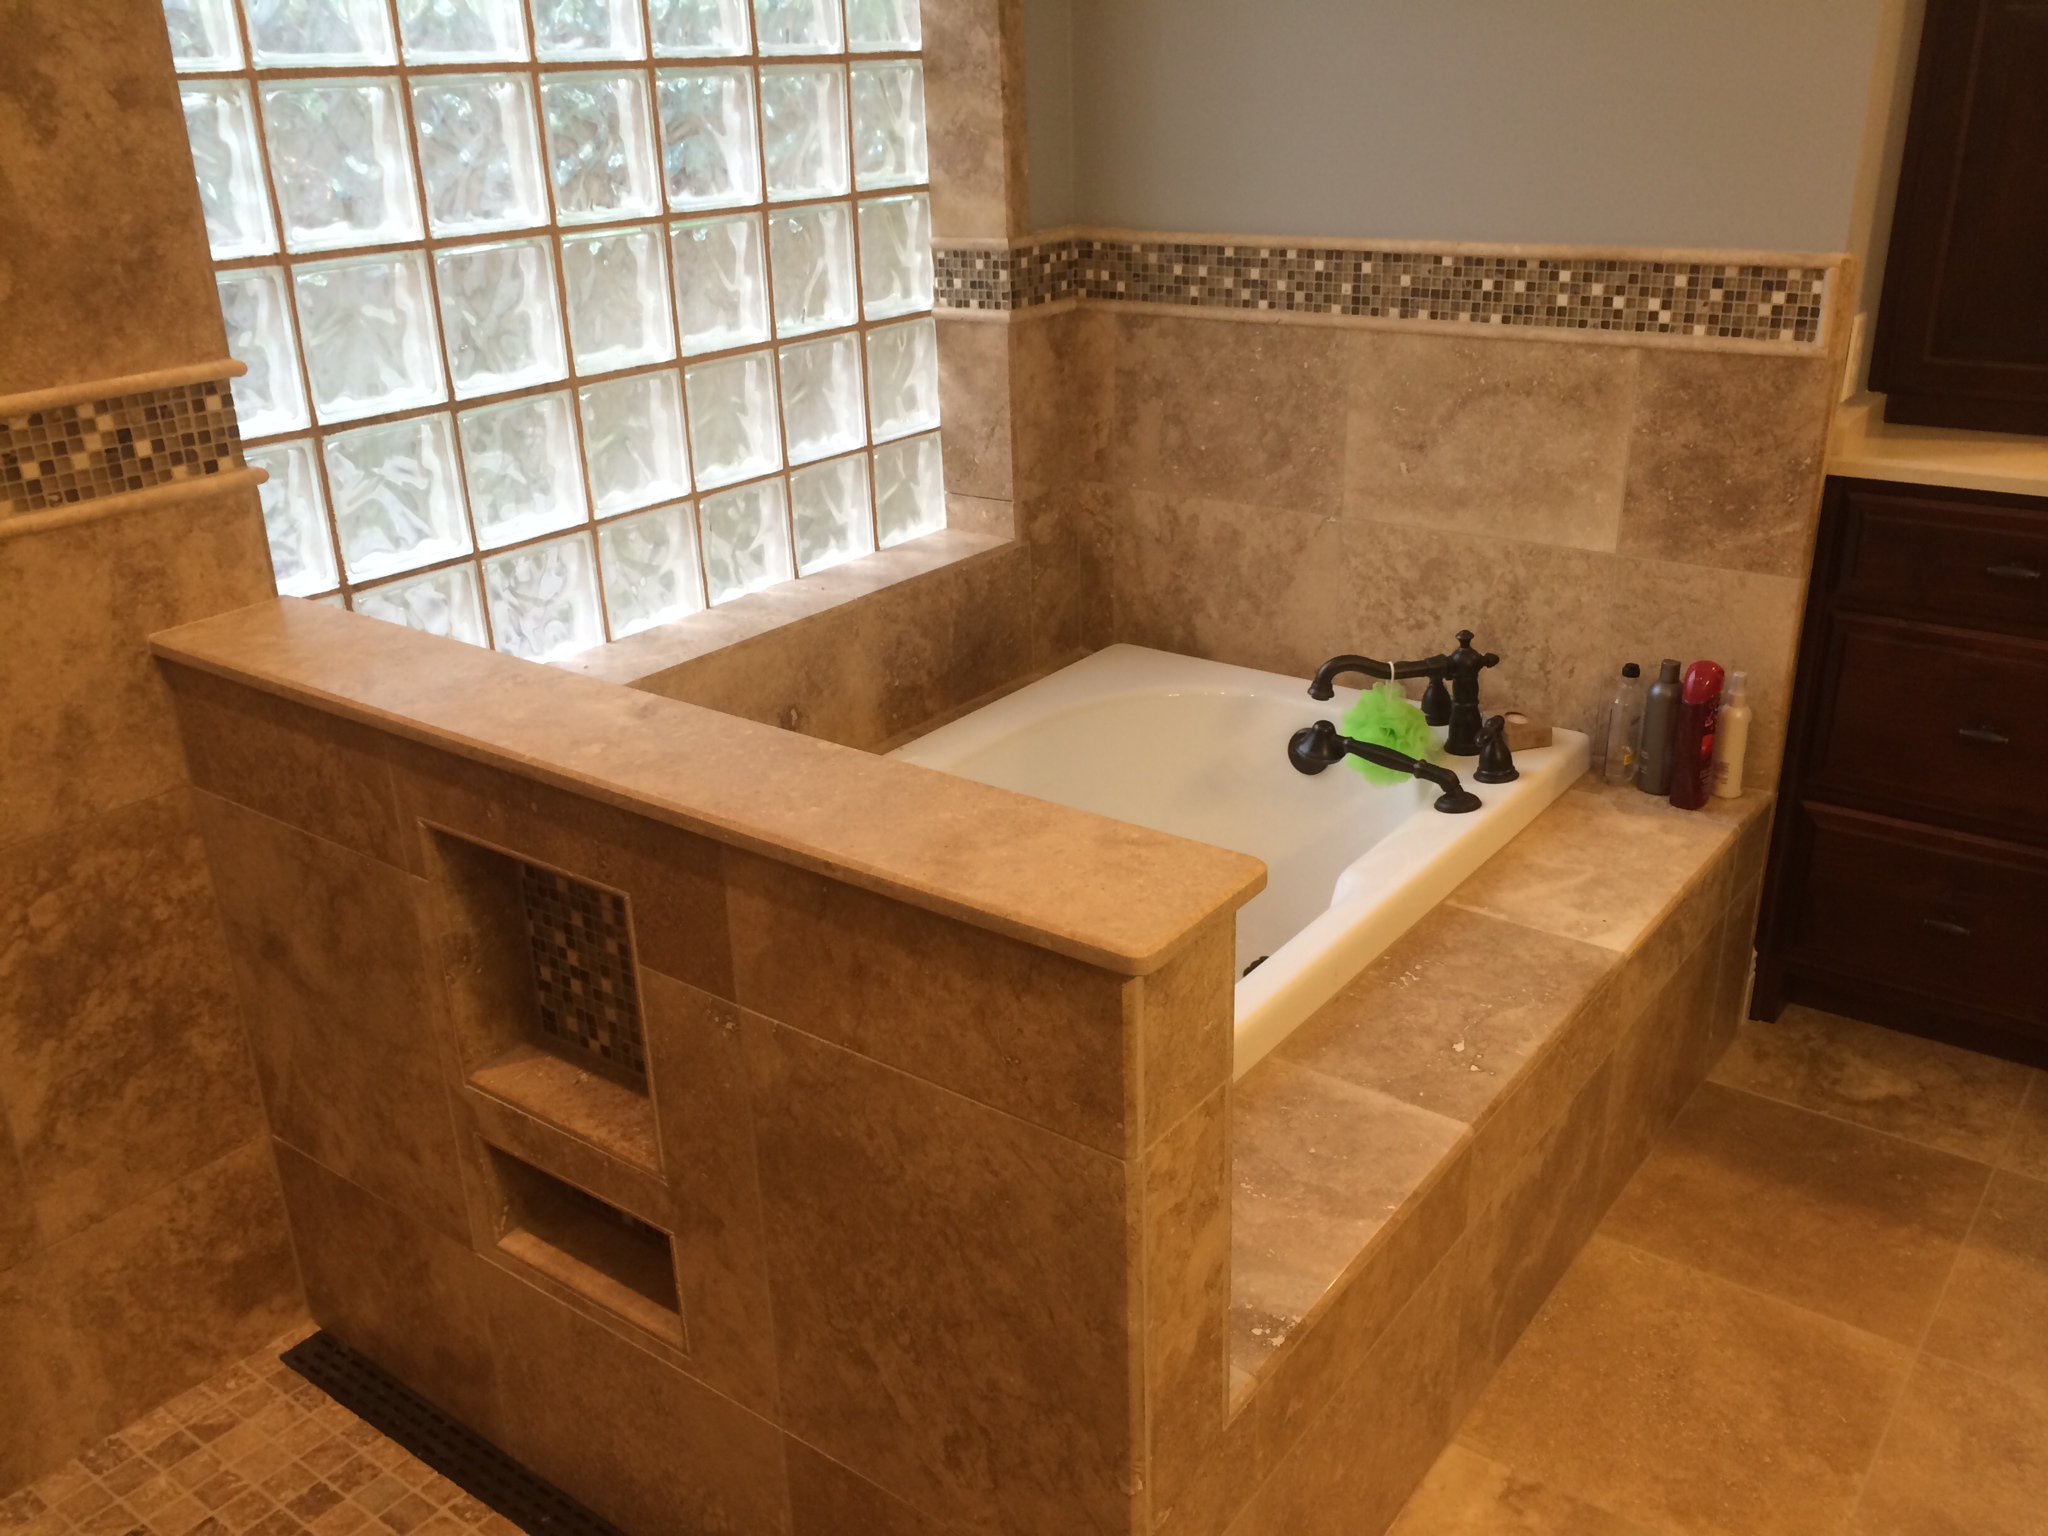 Jacuzzi Tub With Roman Faucet Custom Home Remodeling In Gulfport